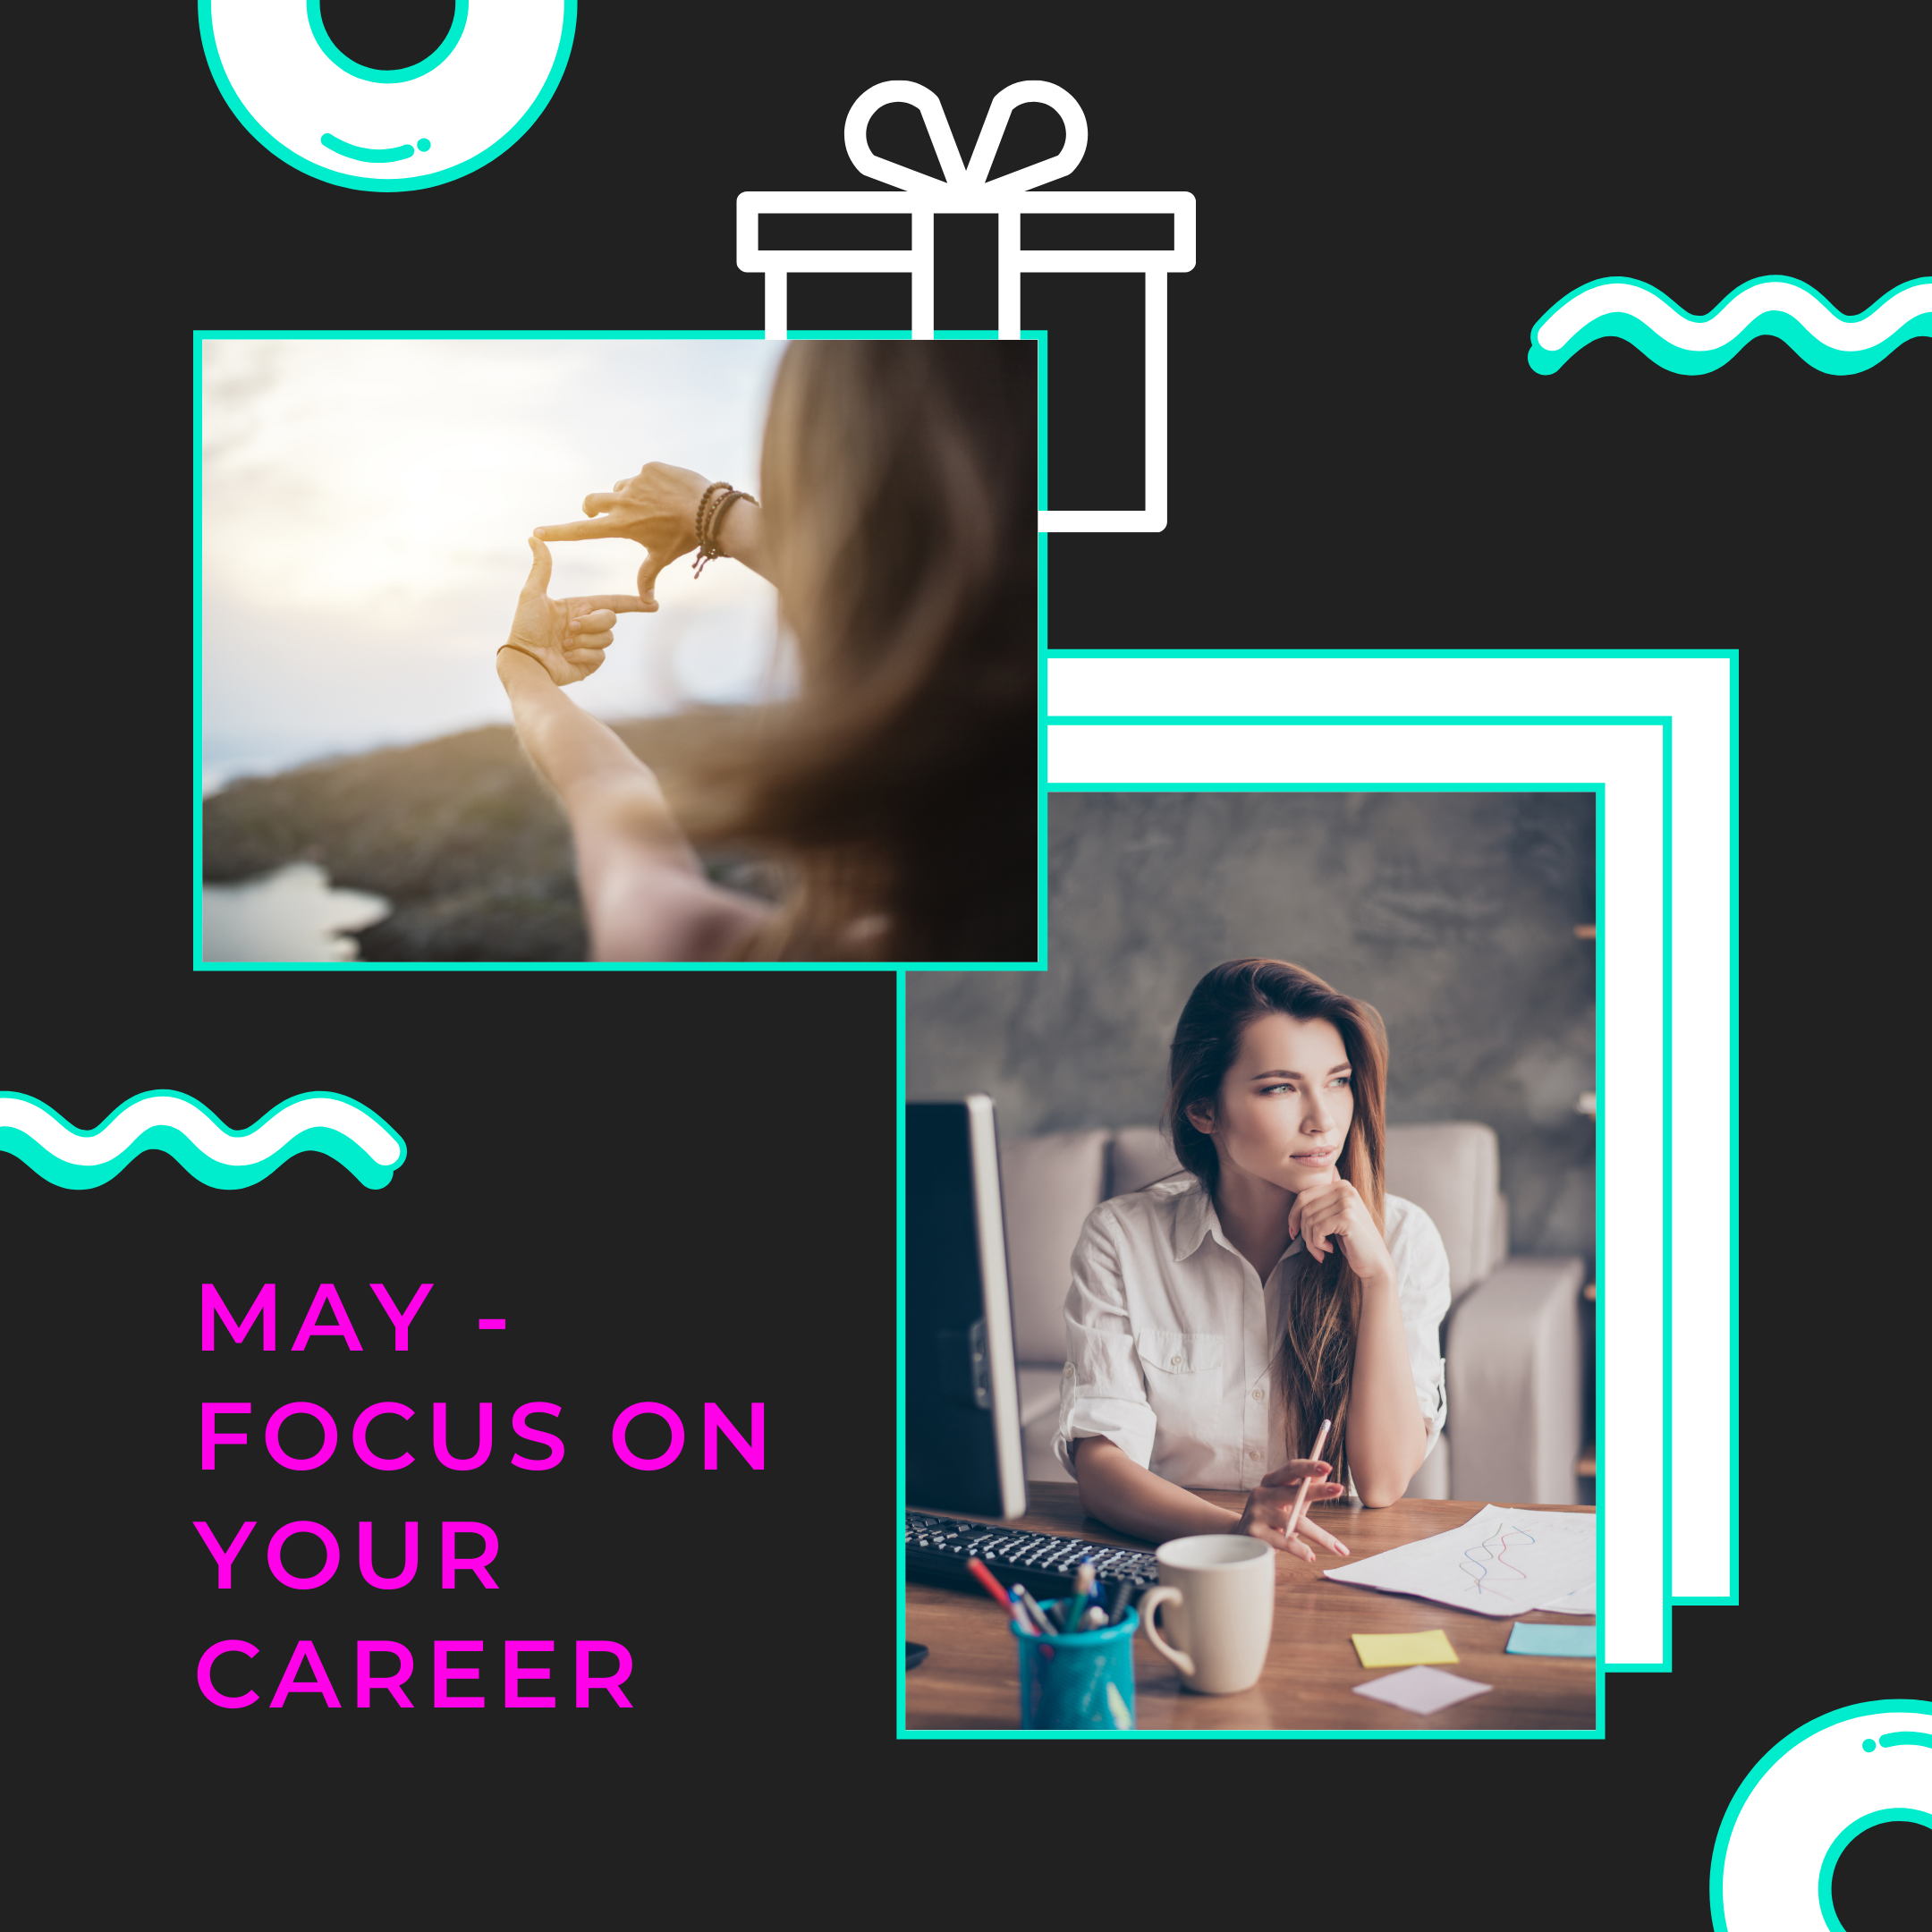 Focus on your Career in May